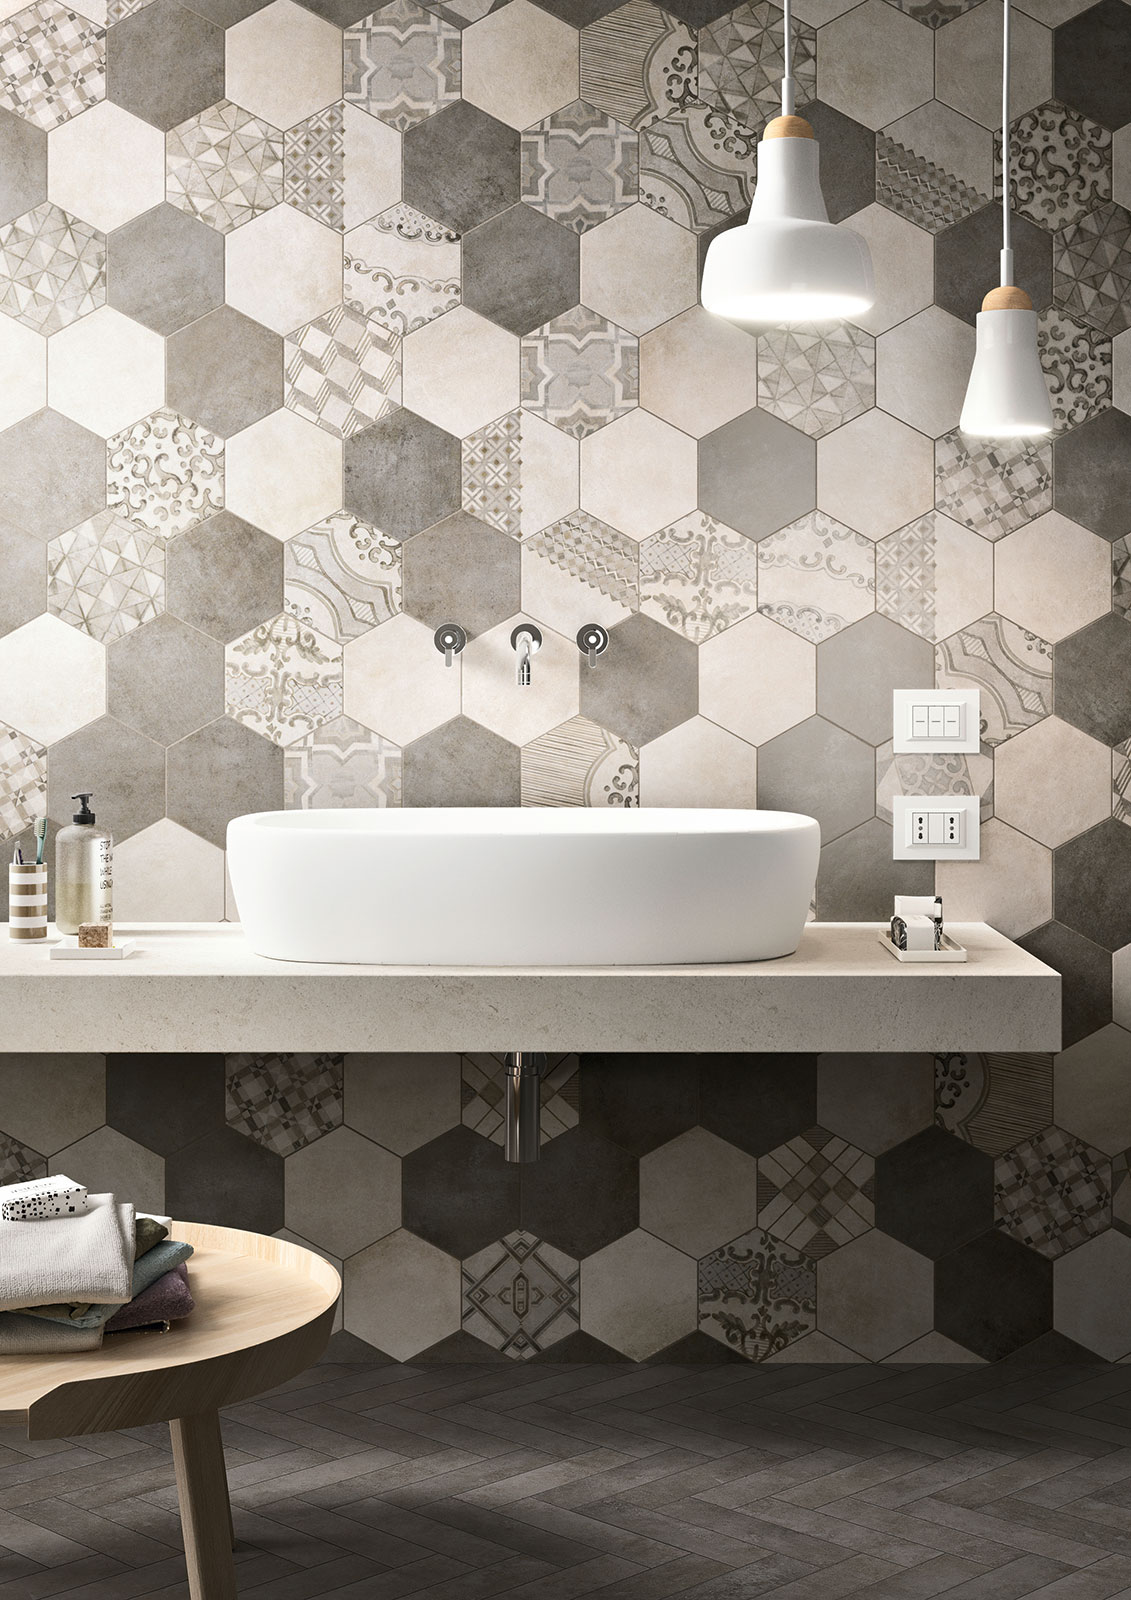 Inspirational ideas for tile laying | Marazzi